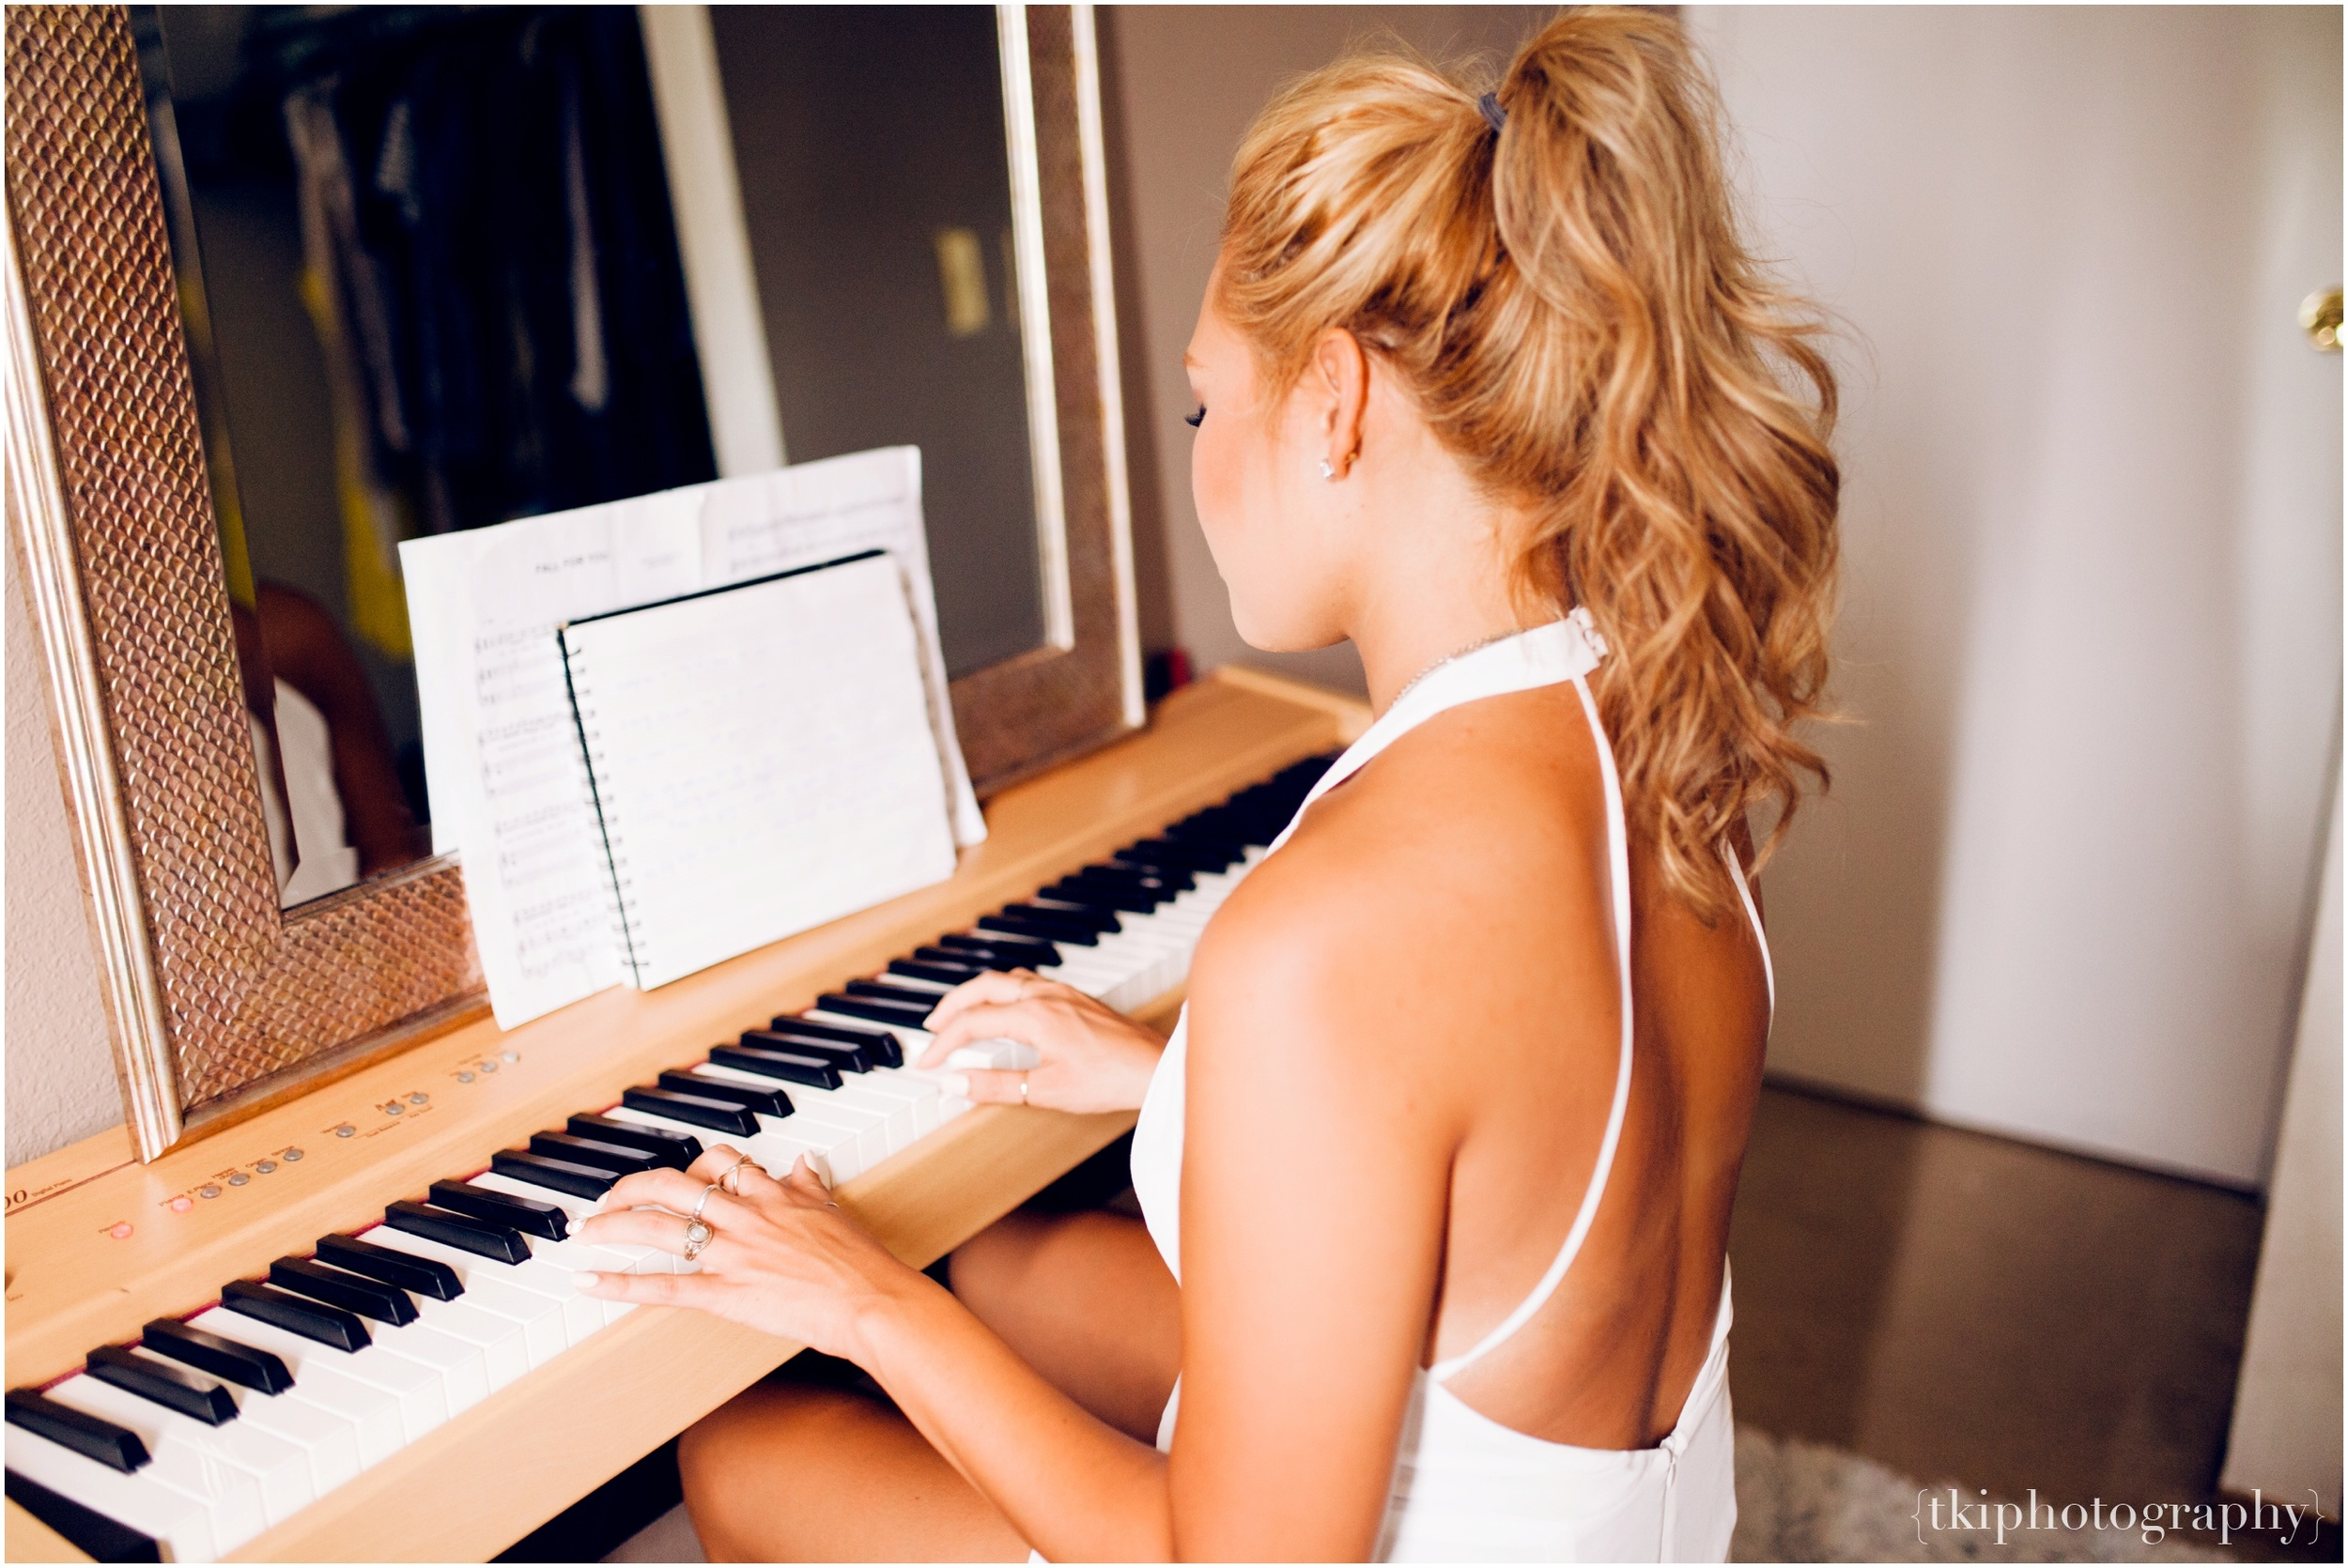 piano-portrait-girl-00.jpg